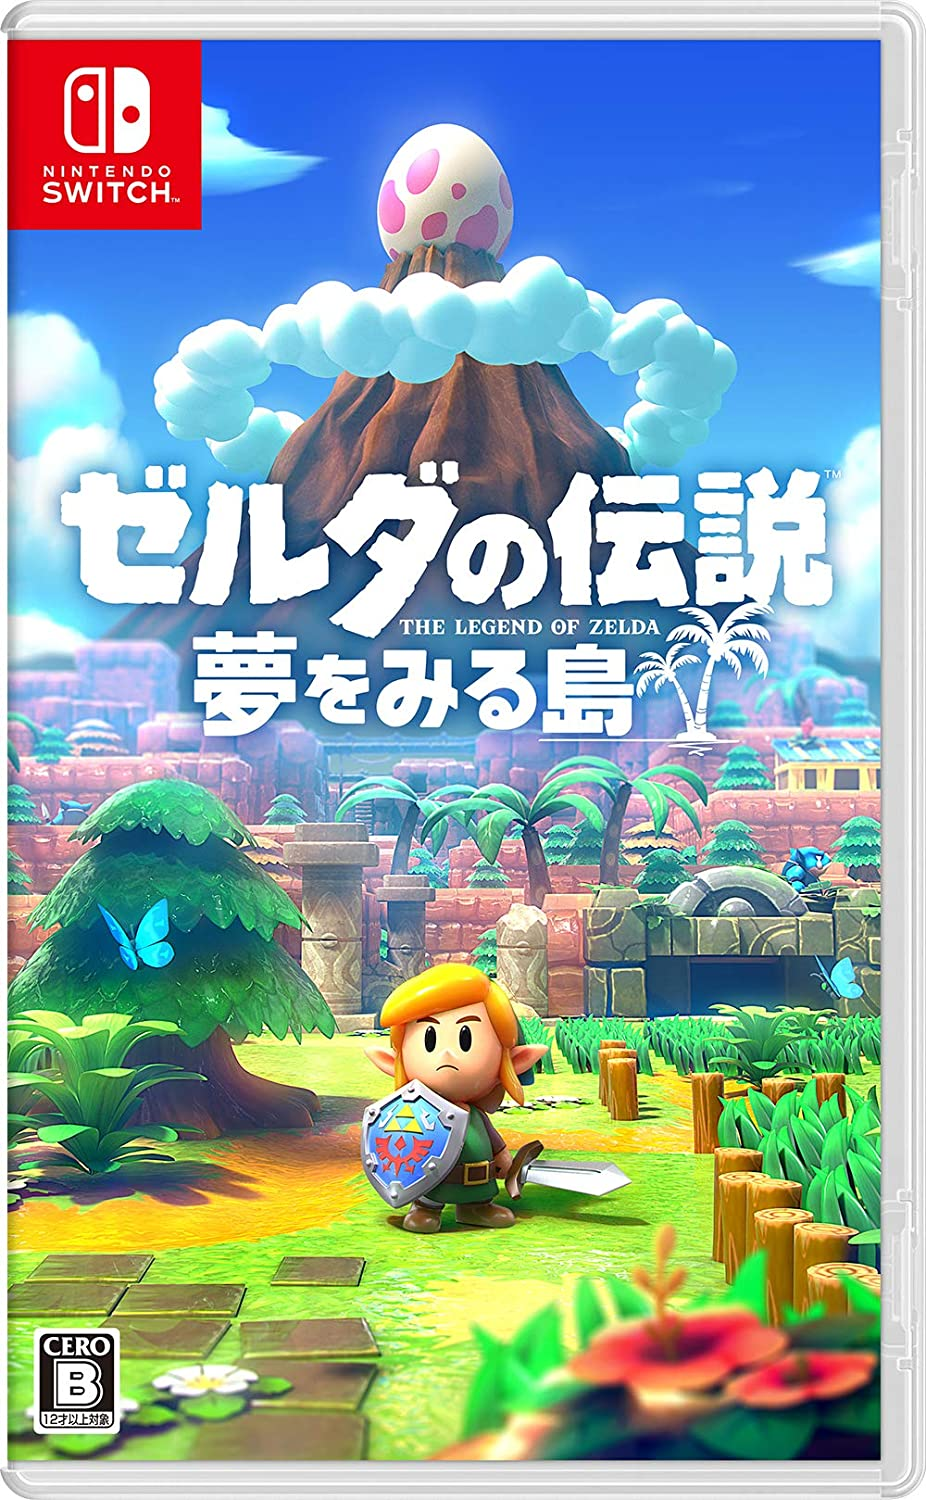 NINTENDO ZELDA LINKS AWAKENING FOR NINTENDO SWITCH REGION FREE JAPANESE VERSION: Amazon.es: Juguetes y juegos